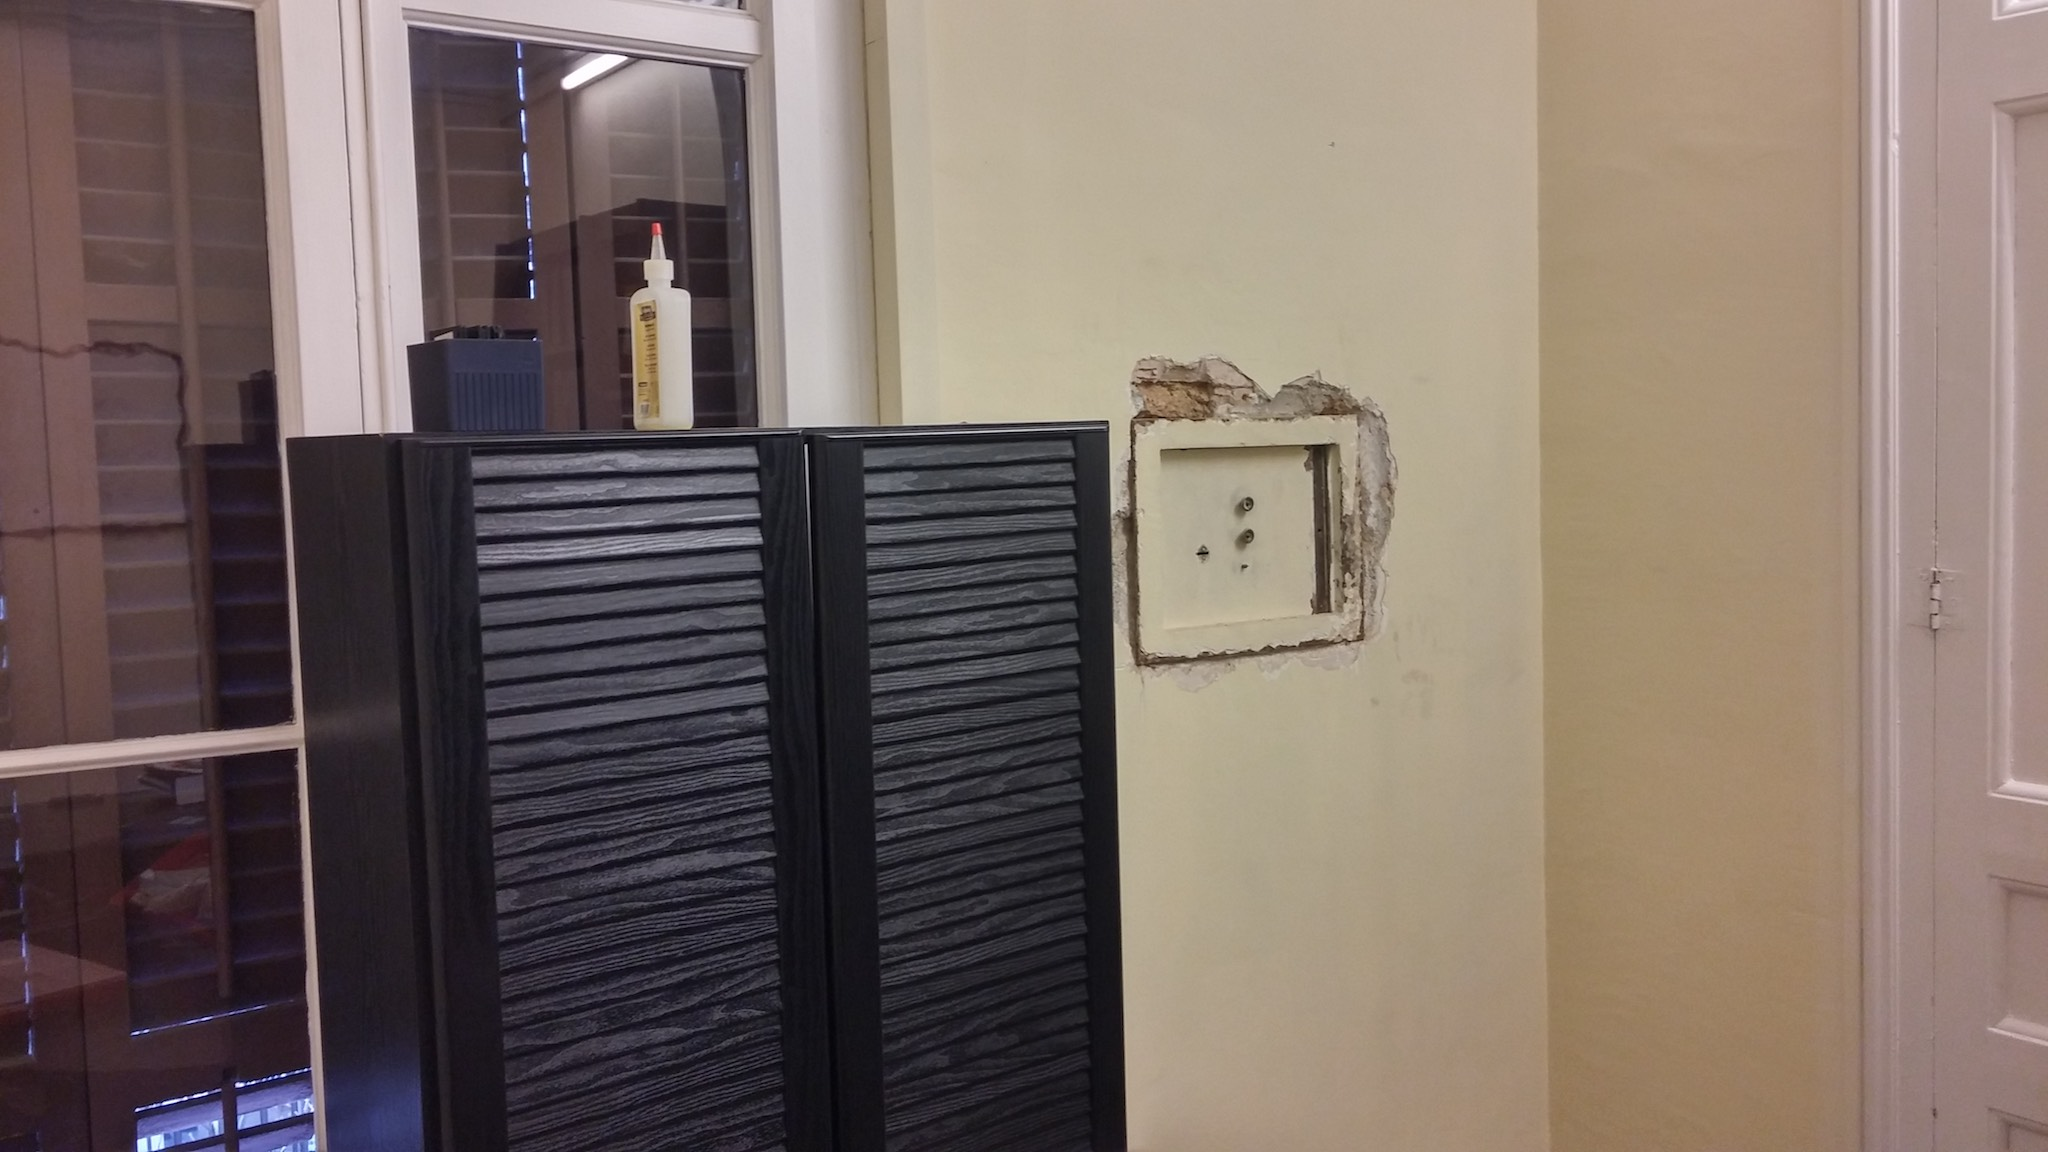 The safe in the flat below burglars tried to hammer out of the wall at 4am.